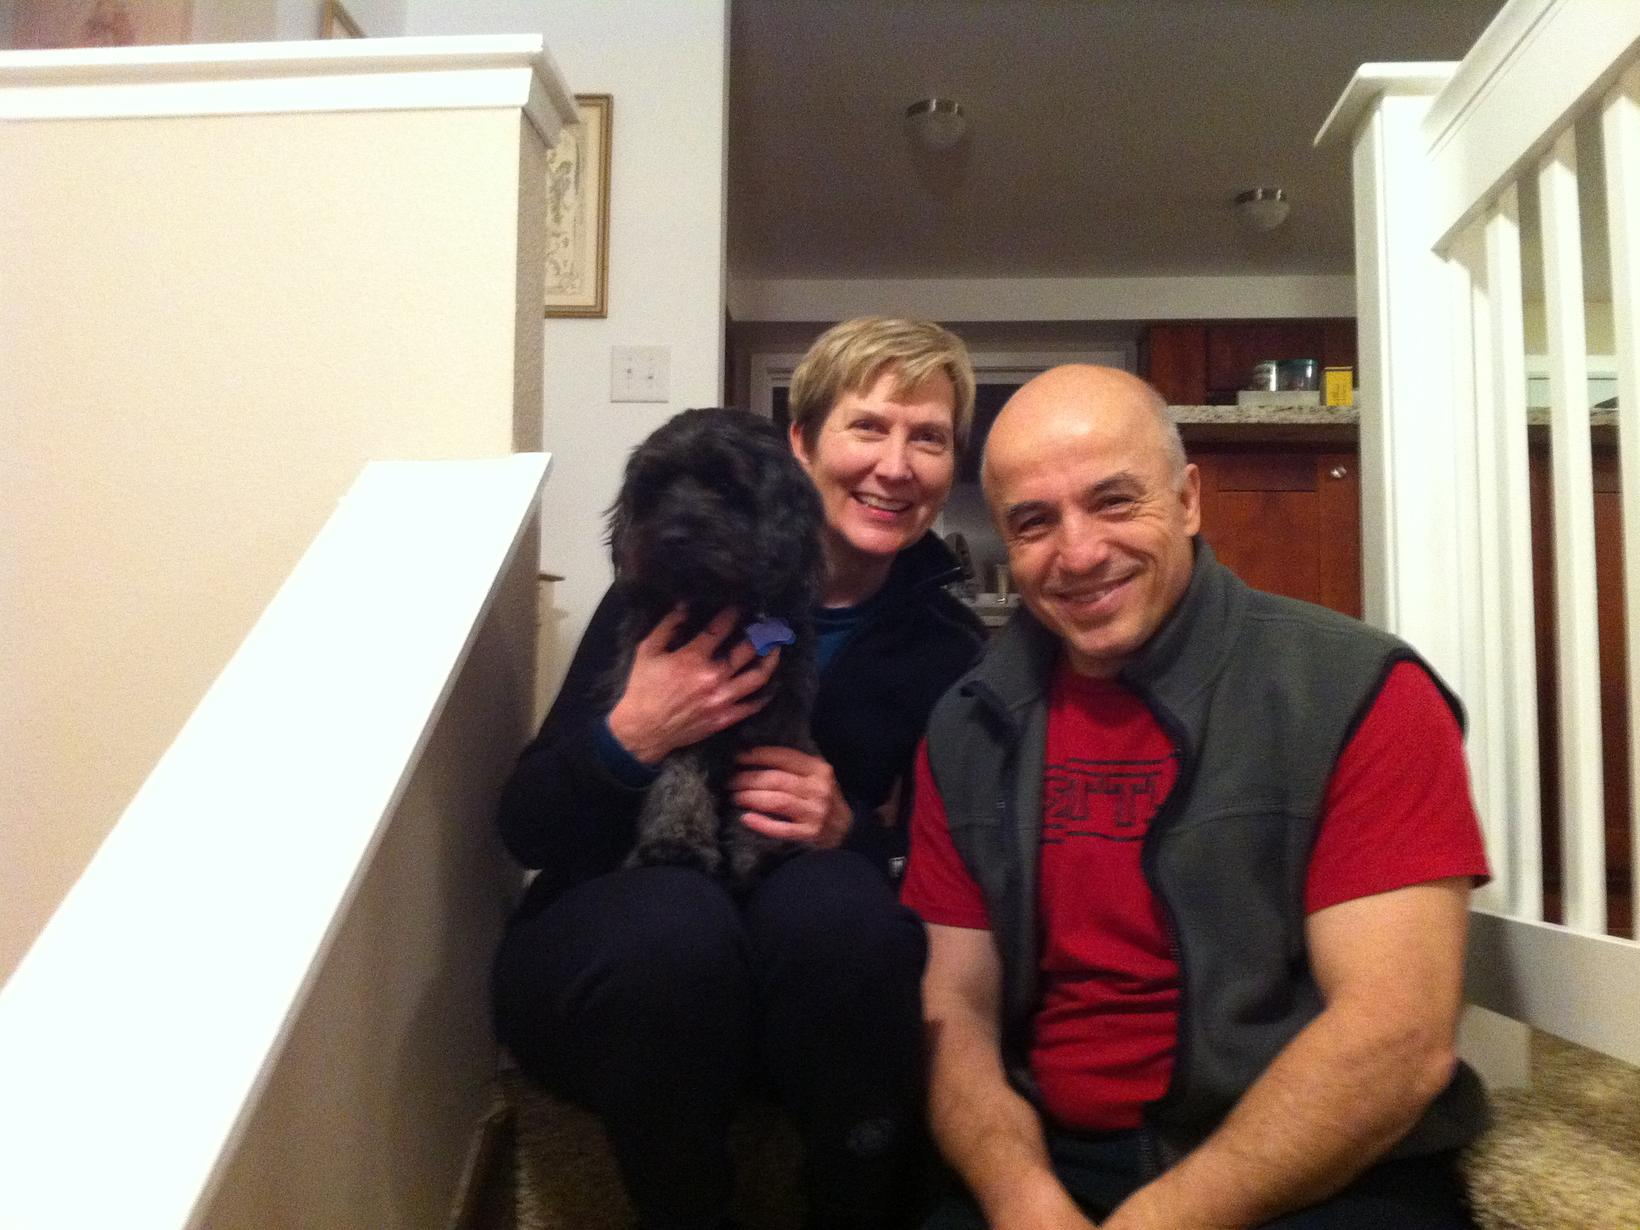 Nancy & Erden from Seattle, Washington, United States